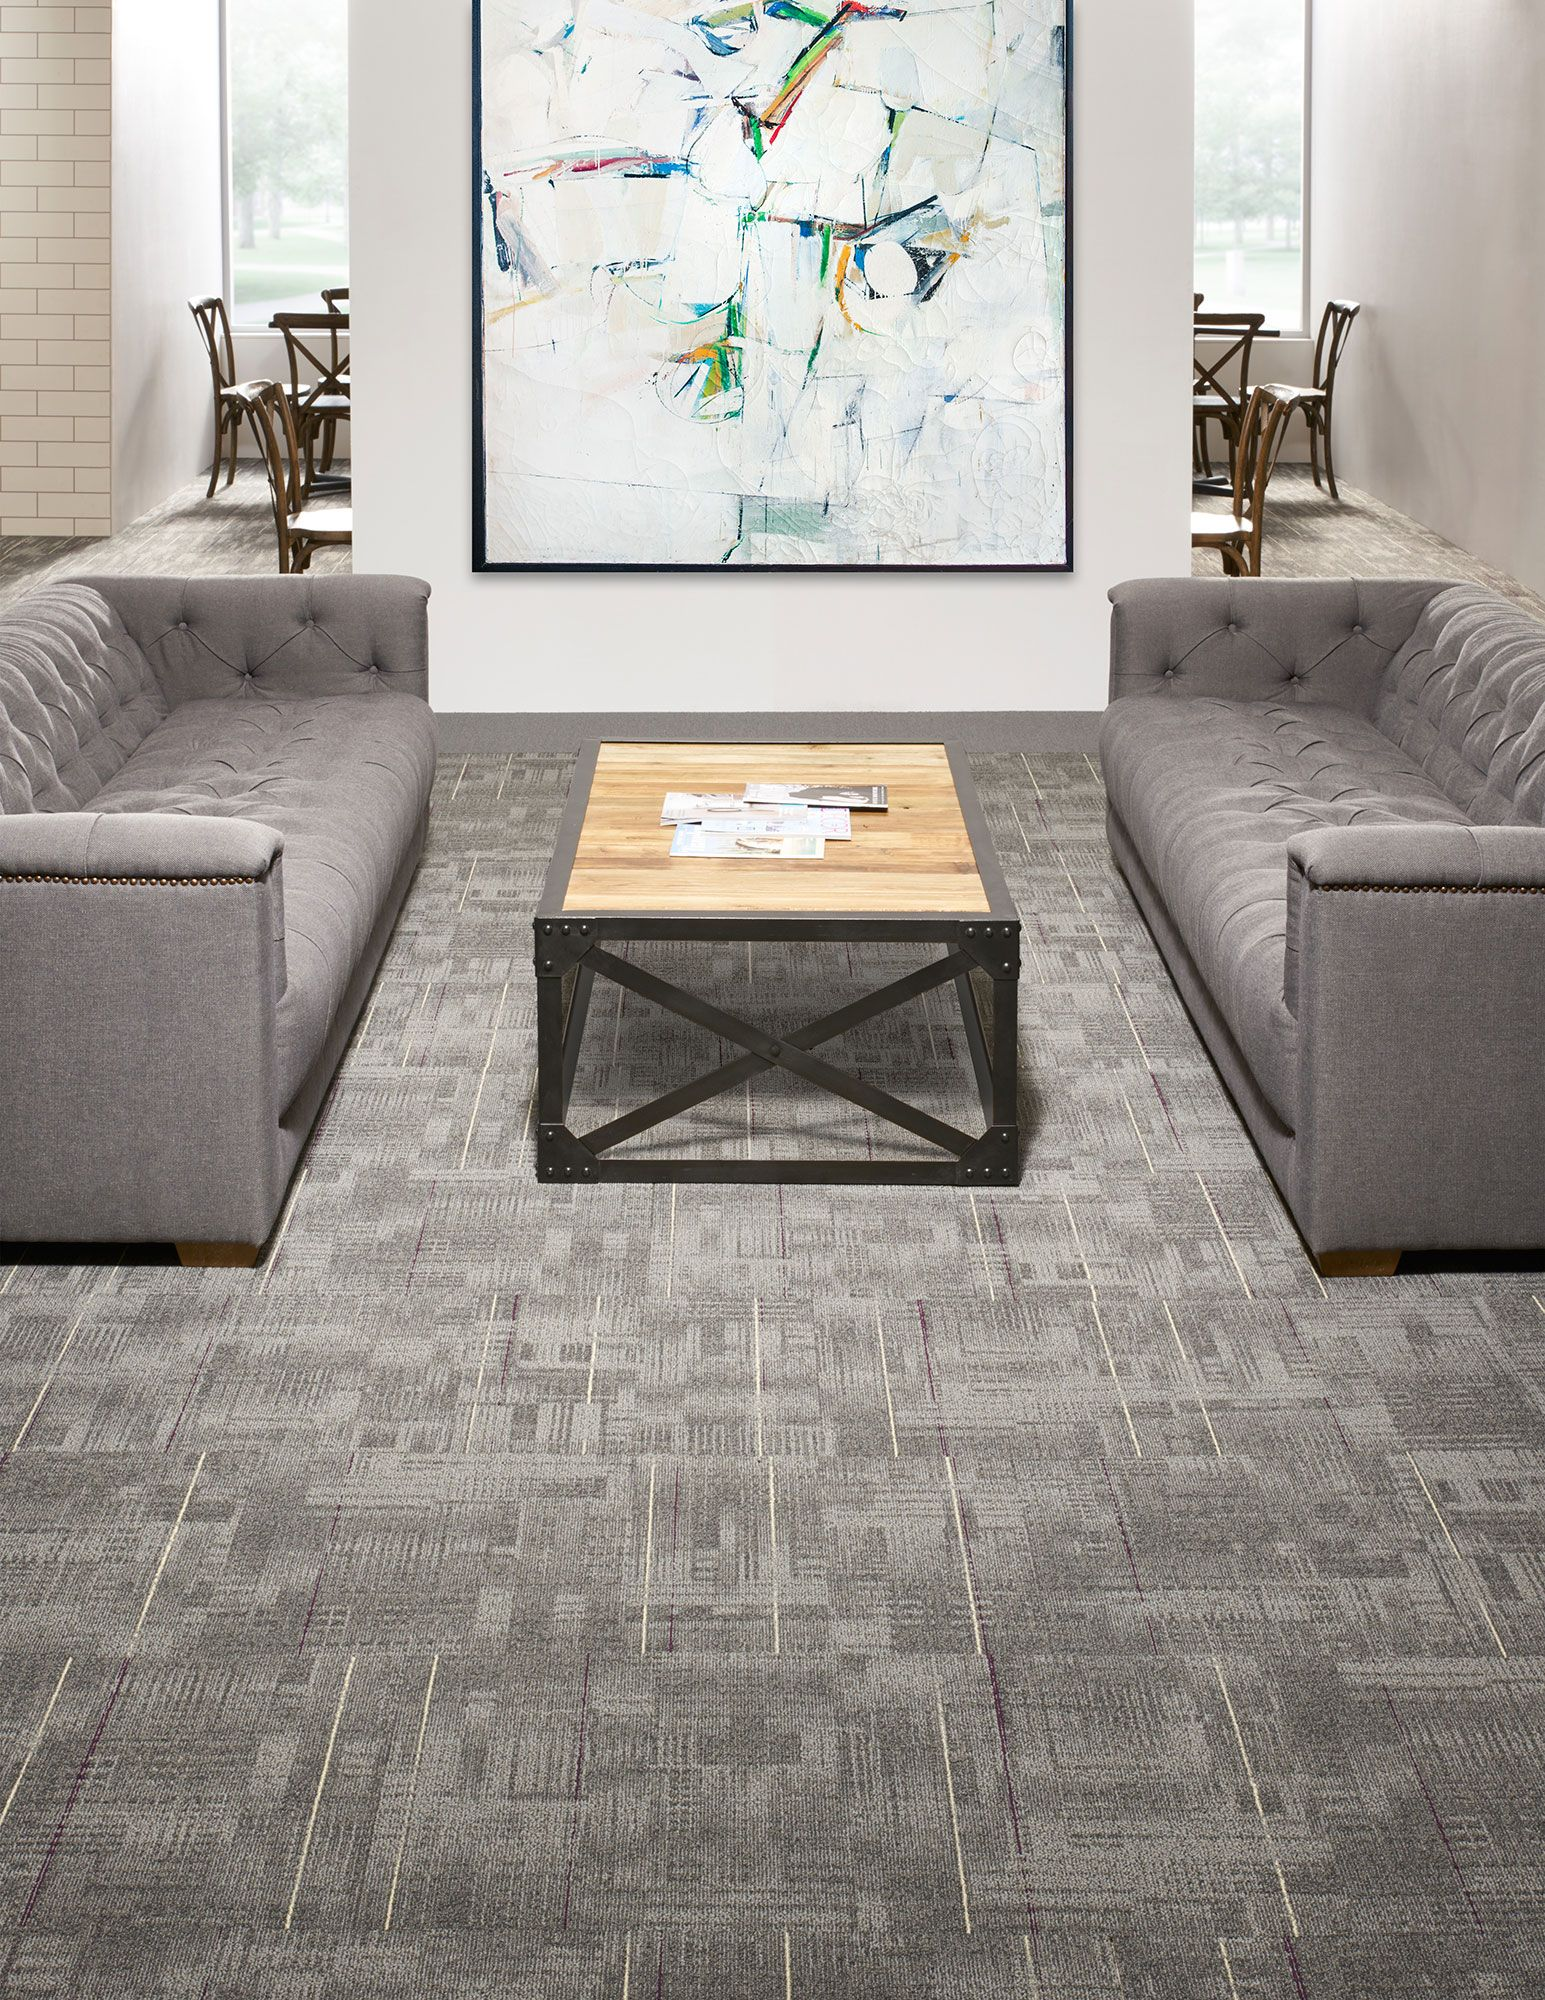 Harley color carpet tiles - Freehand In Manuscript From The Journal Collection See More Http Bit